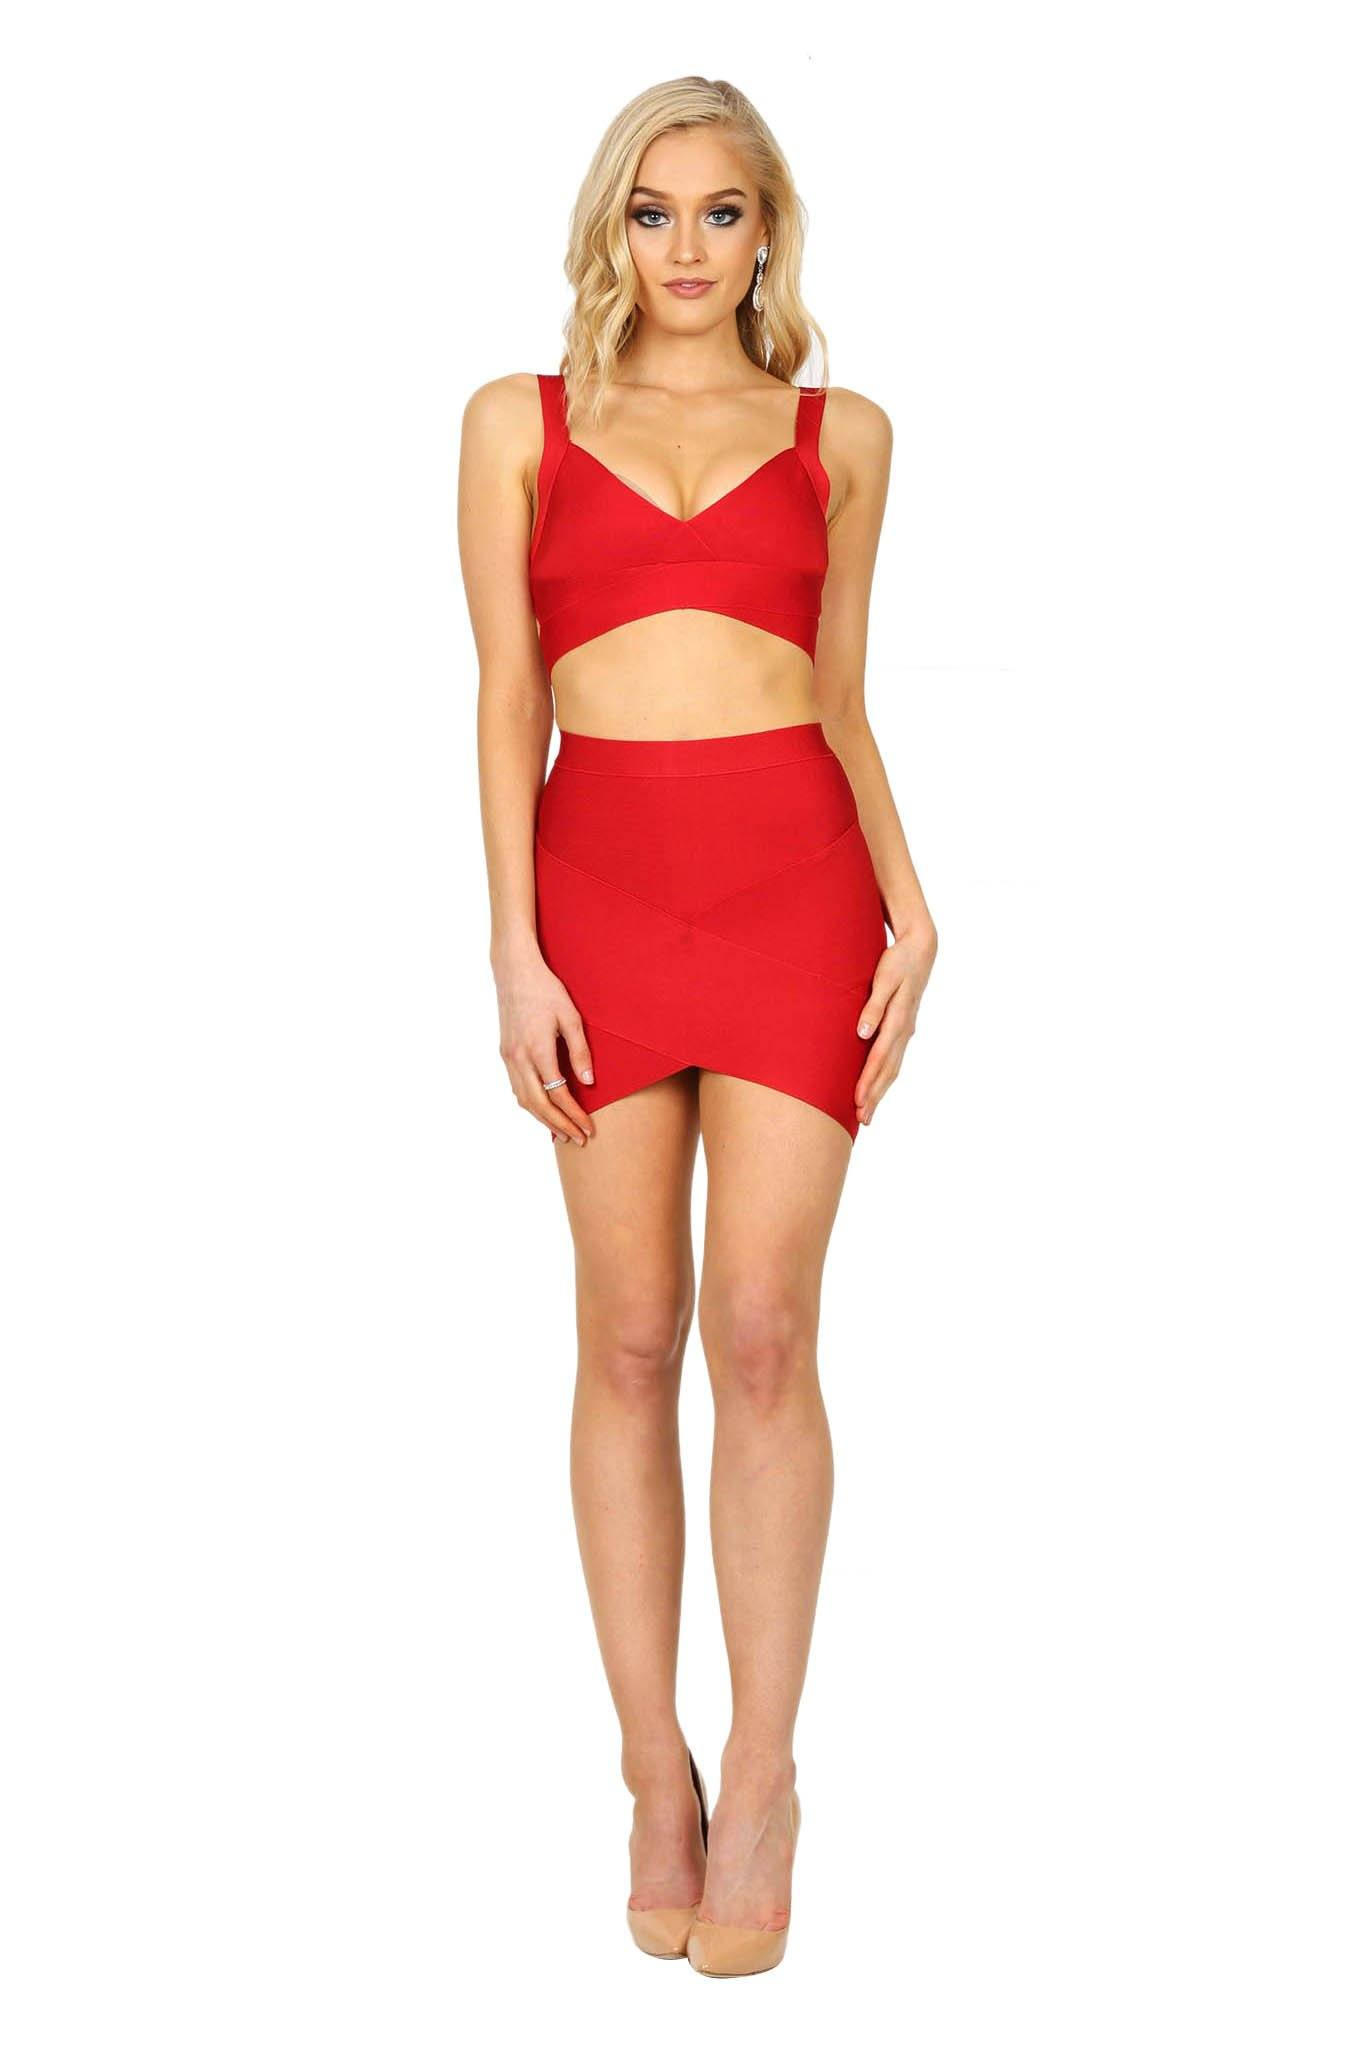 760236f229 Red matching fitted bandage set including bralette style top and arched hem  mini skirt